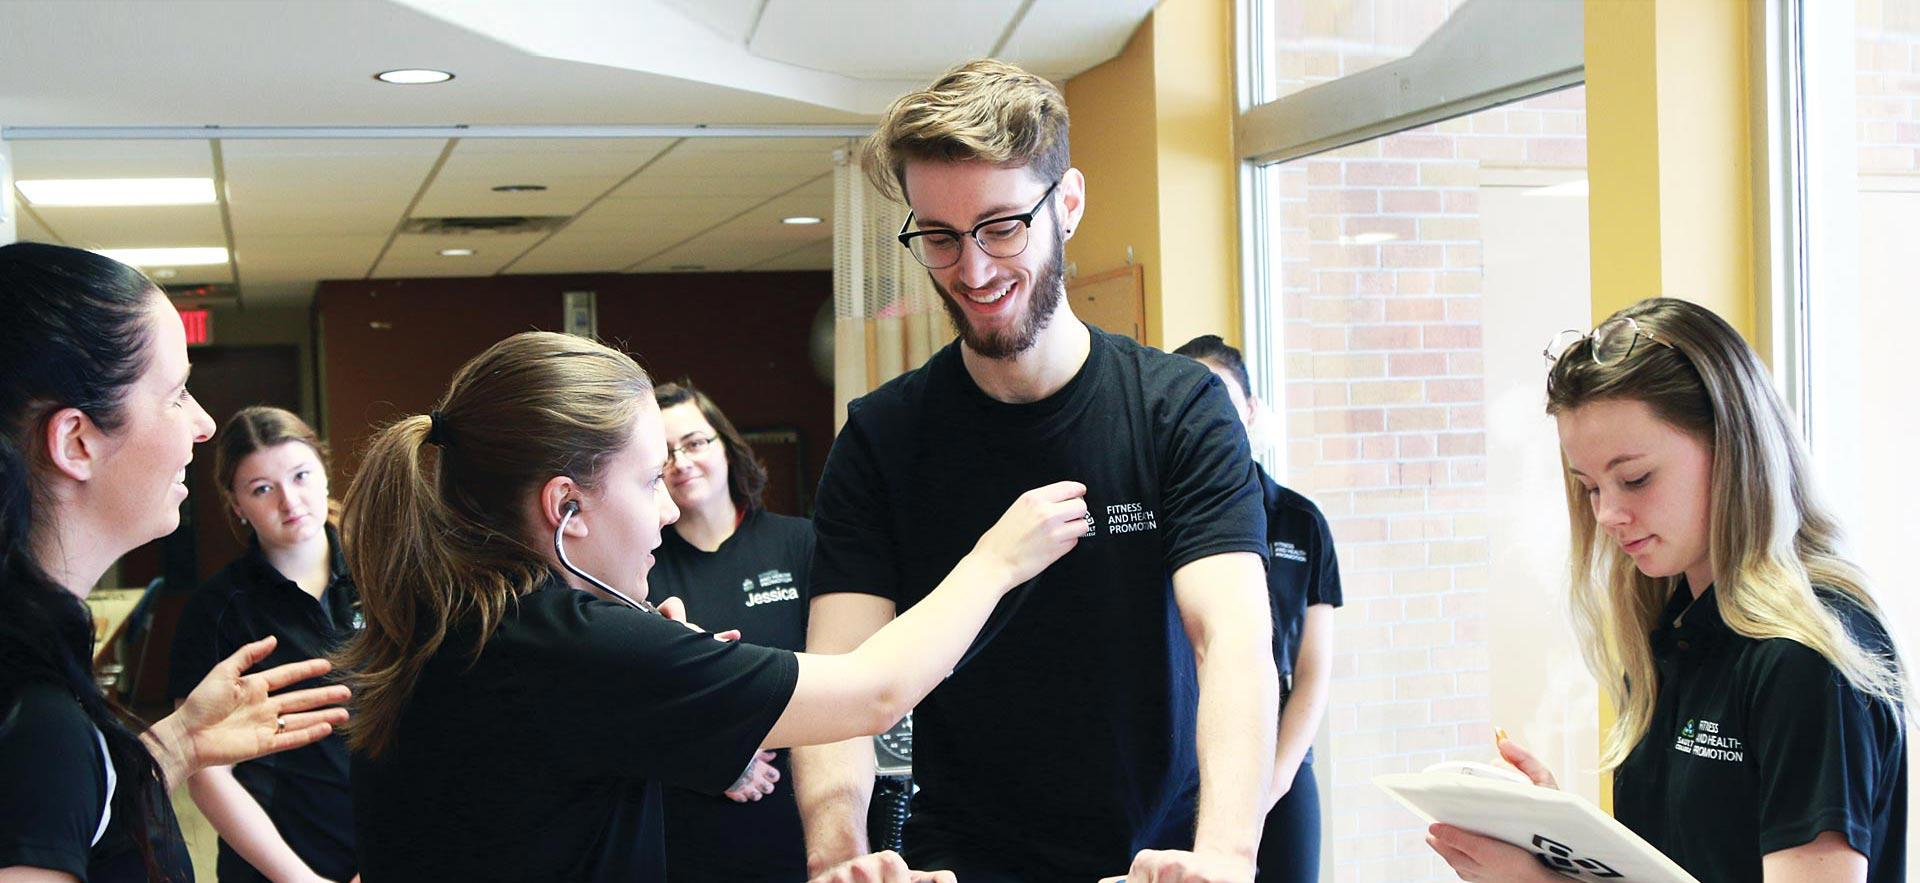 A female Fitness and Health Promotion student checks the  heart-rate of a smiling male student.